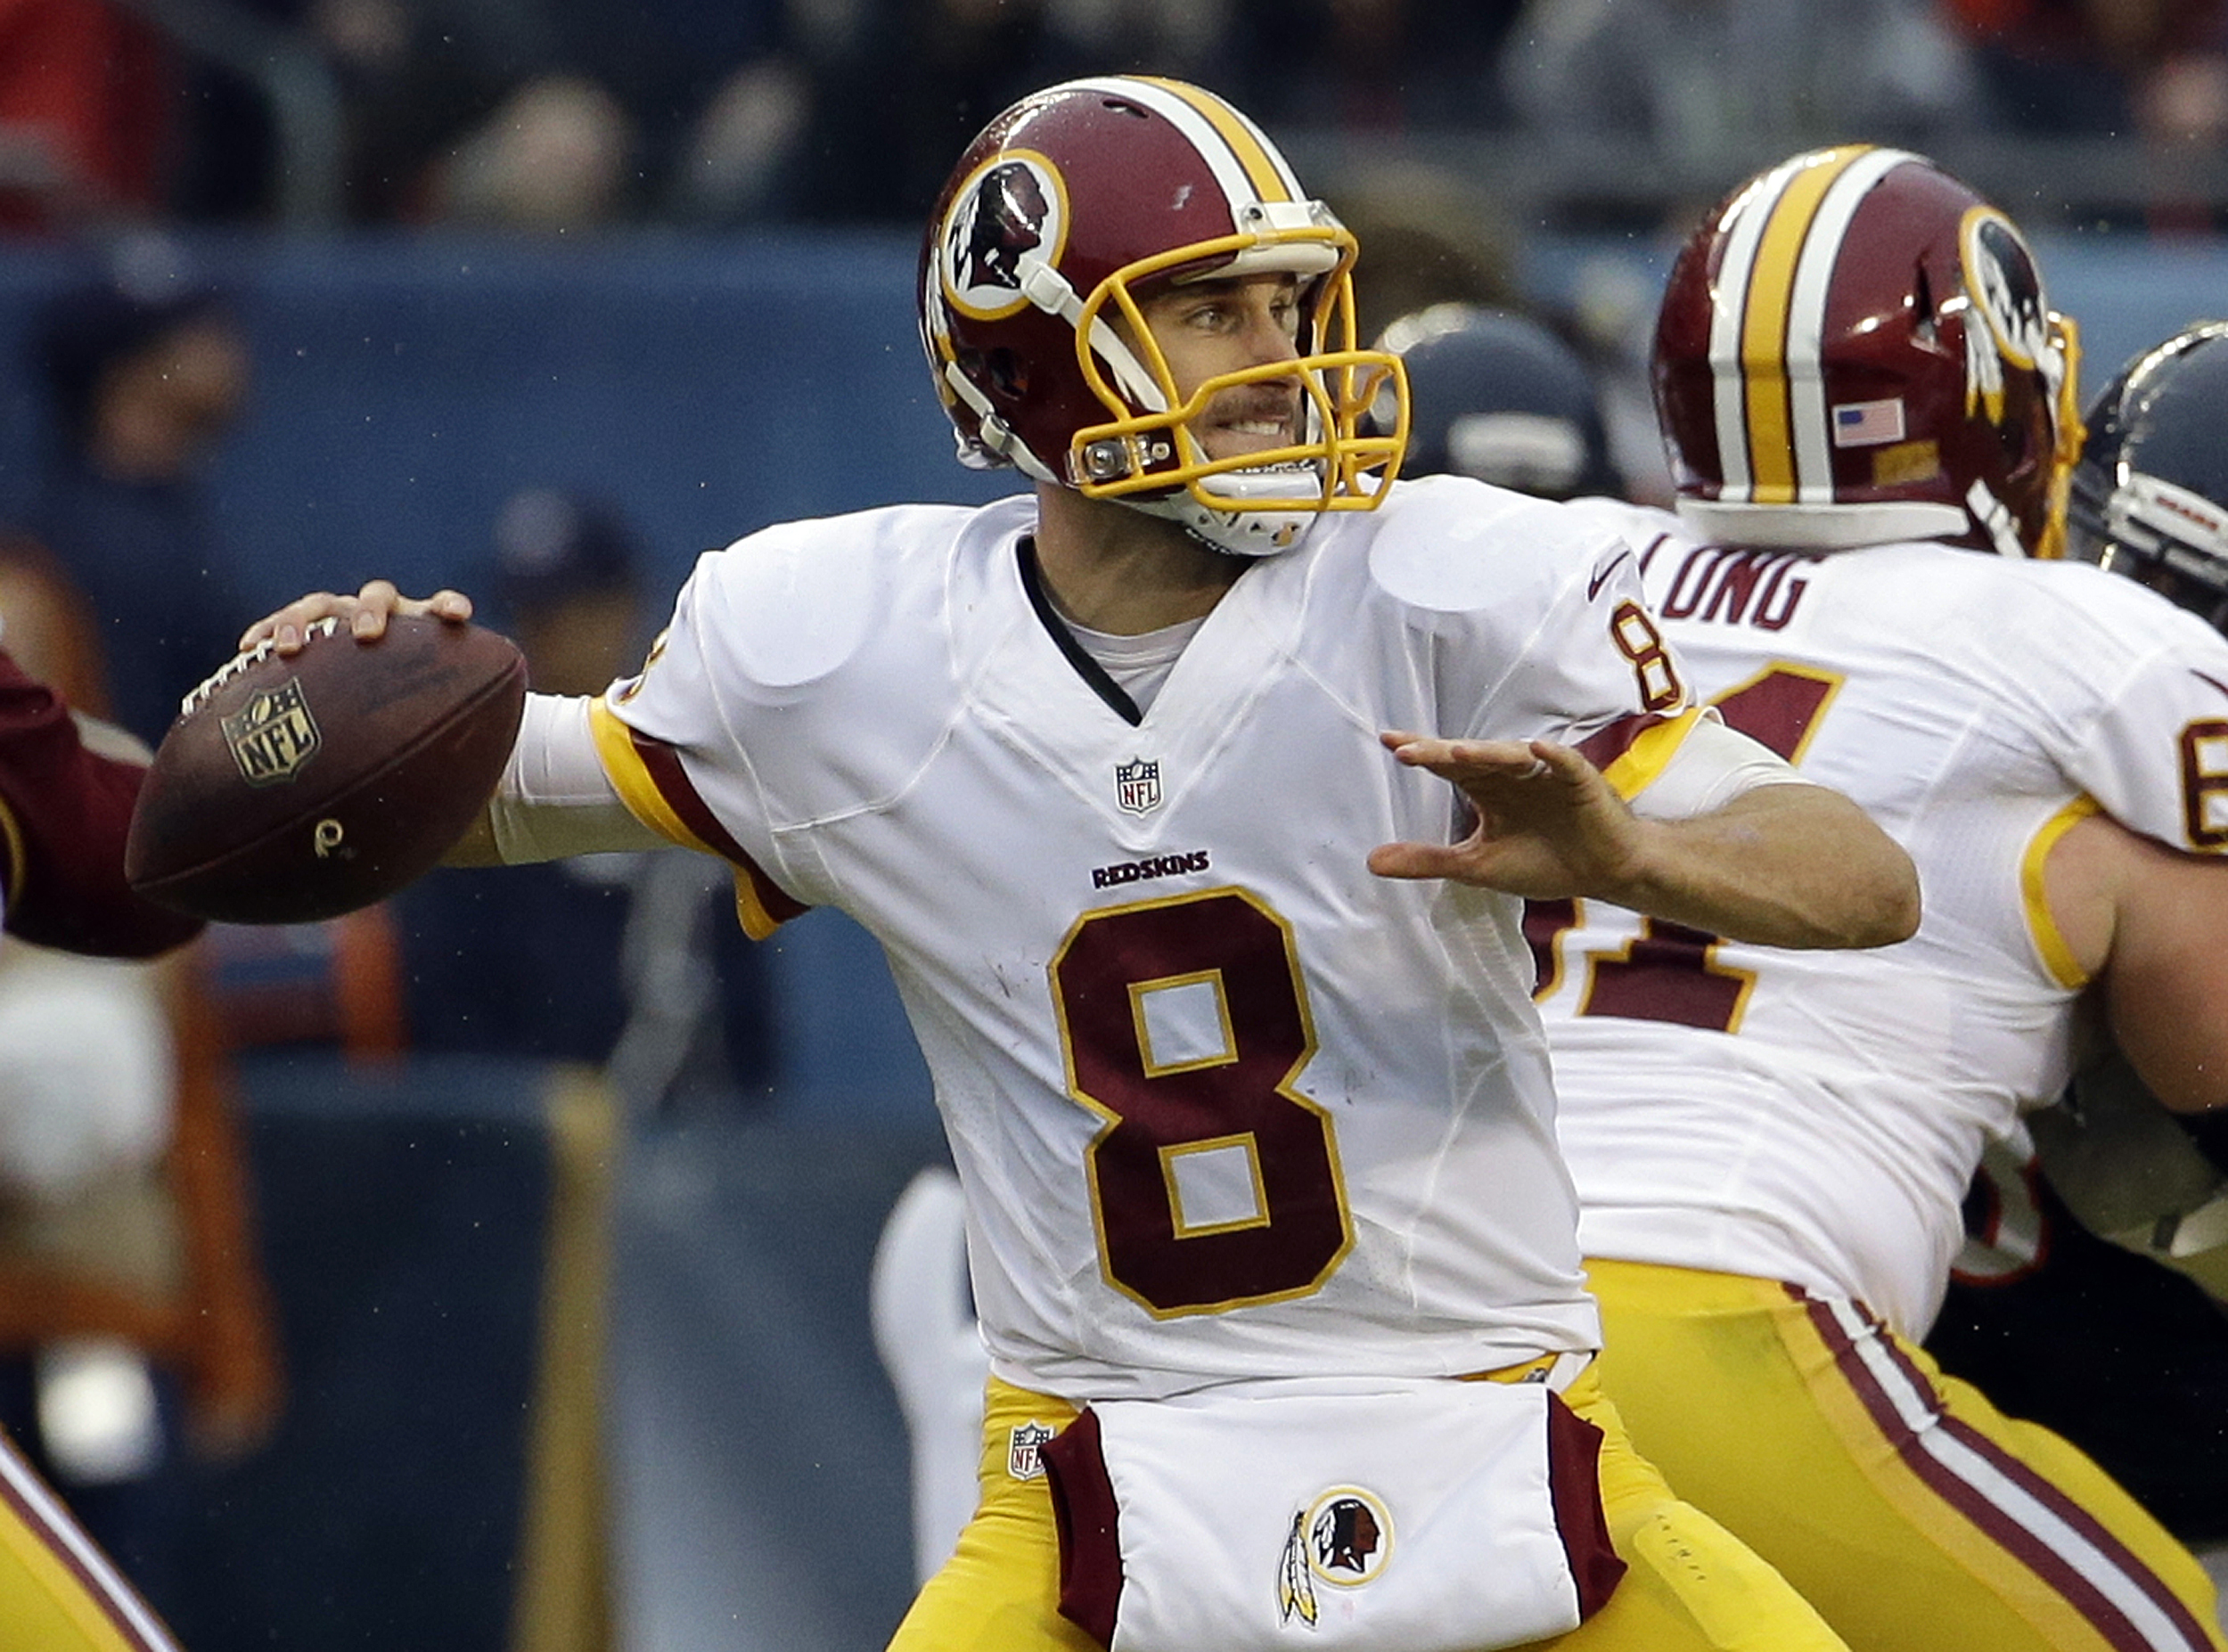 FILE - In this Dec. 13, 2015 file photo, Washington Redskins quarterback Kirk Cousins (8) throws during the second half of an NFL football game against the Chicago Bears in Chicago. Publicly, anyway, the Washington Redskins have not made clear whether the